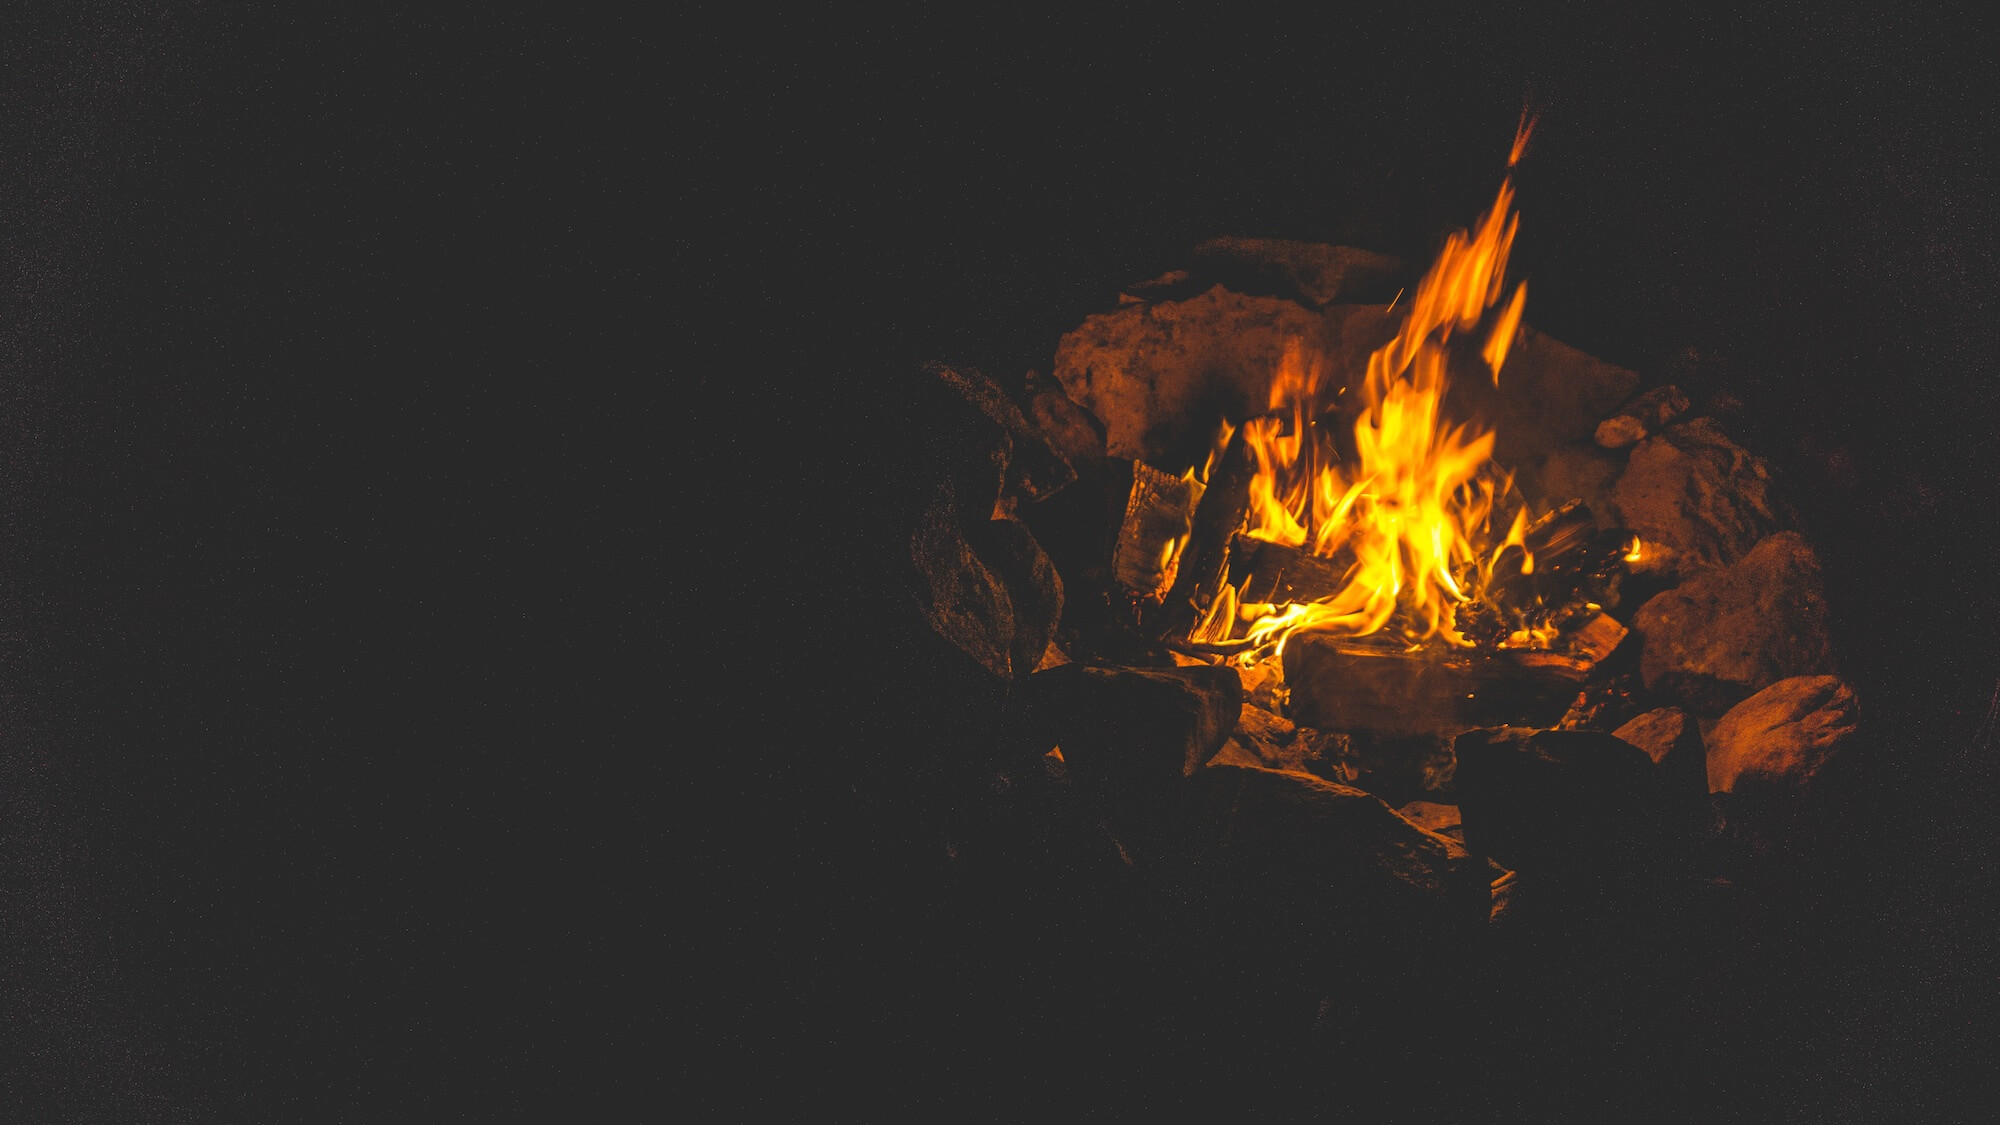 The discovery of fire and its relation to the invention of cooking